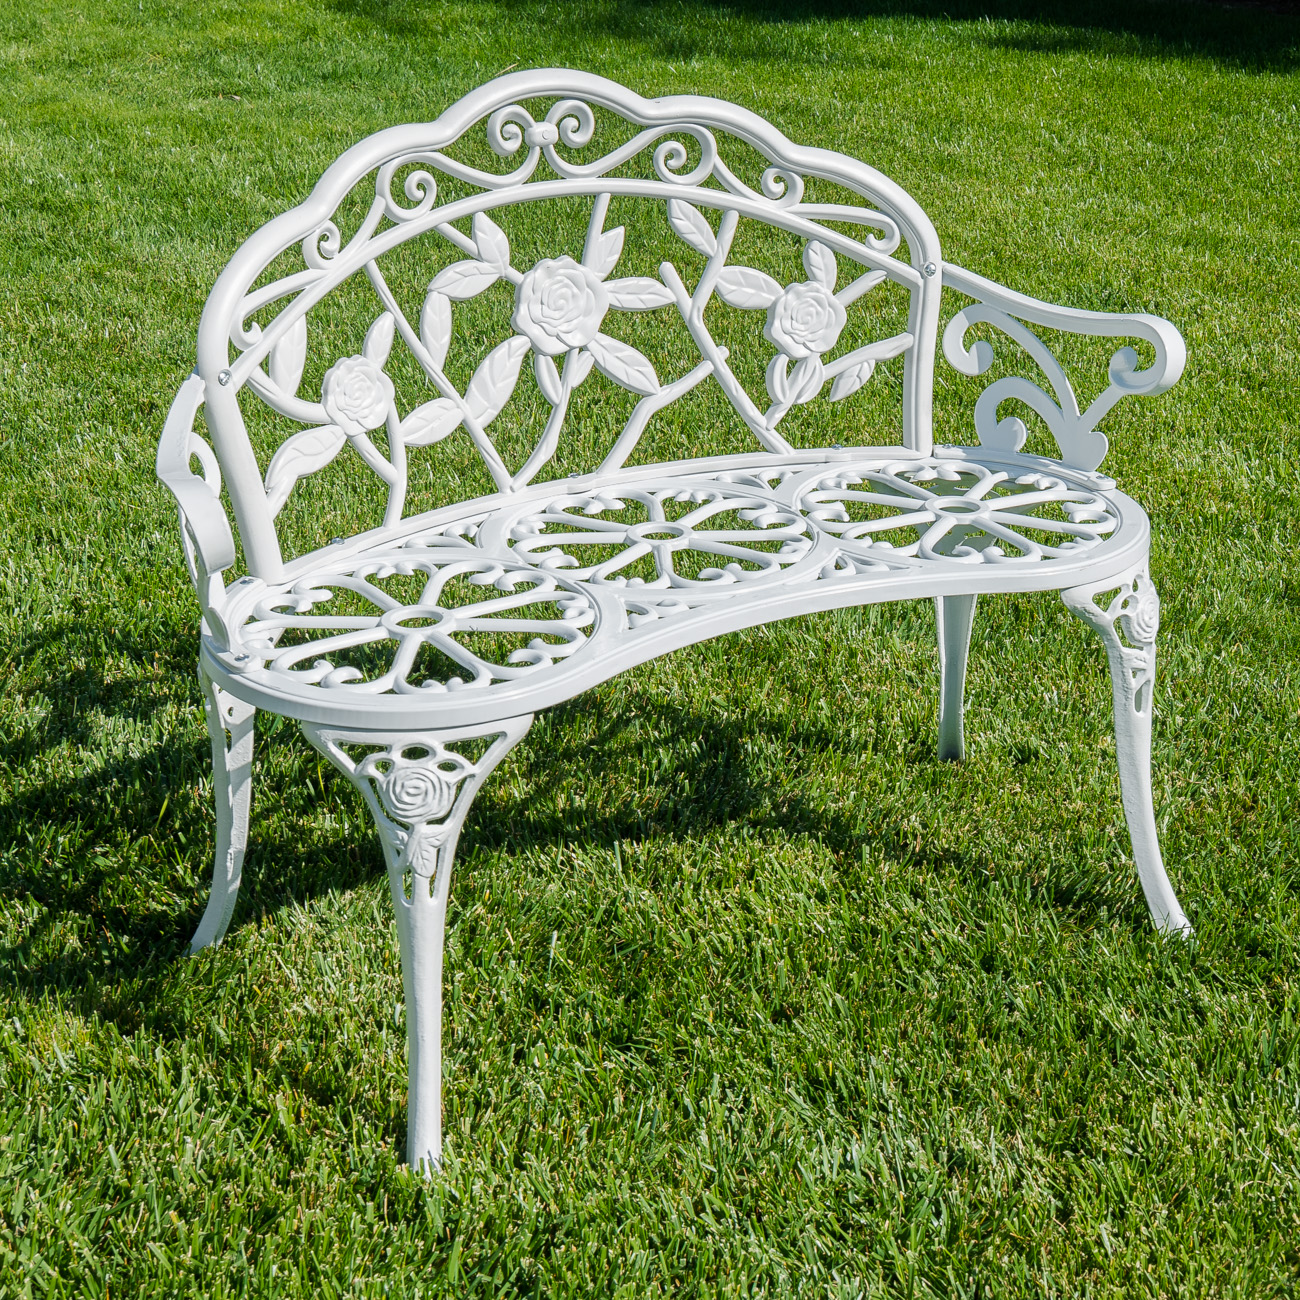 39 White Antique Style Patio Porch Garden Bench Aluminum Outdoor Chair Rose New Ebay